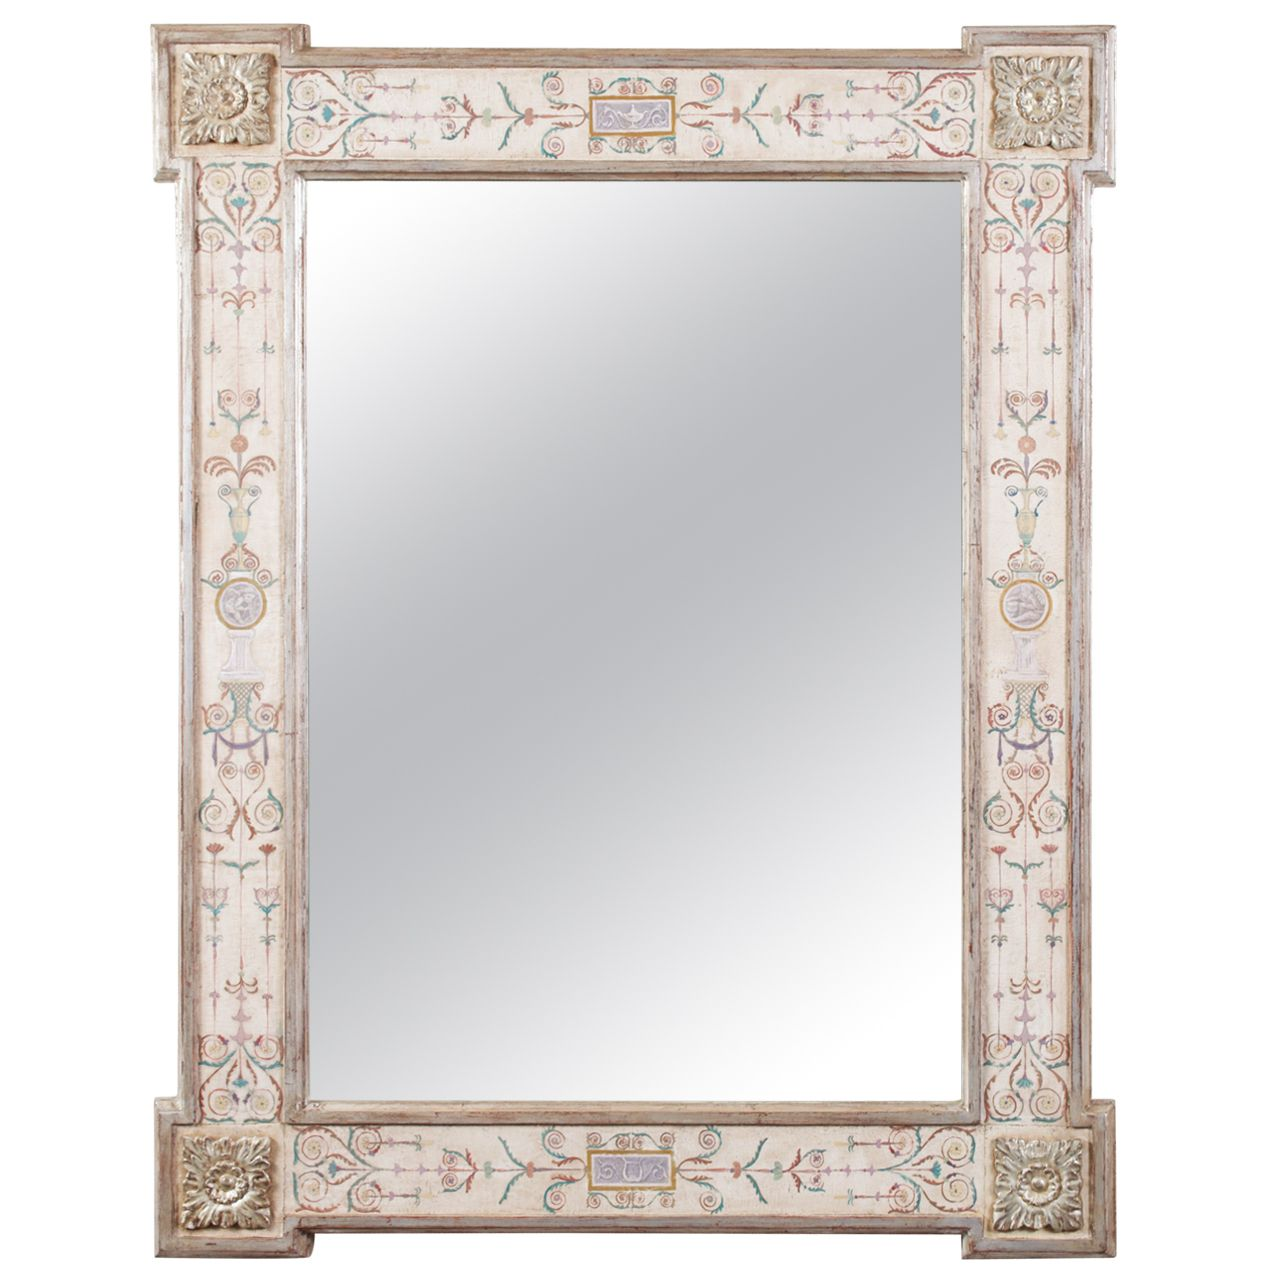 Hand Painted Neoclassical Pompeii Mirror Mirror Painting Modern Mirror Wall Mirror